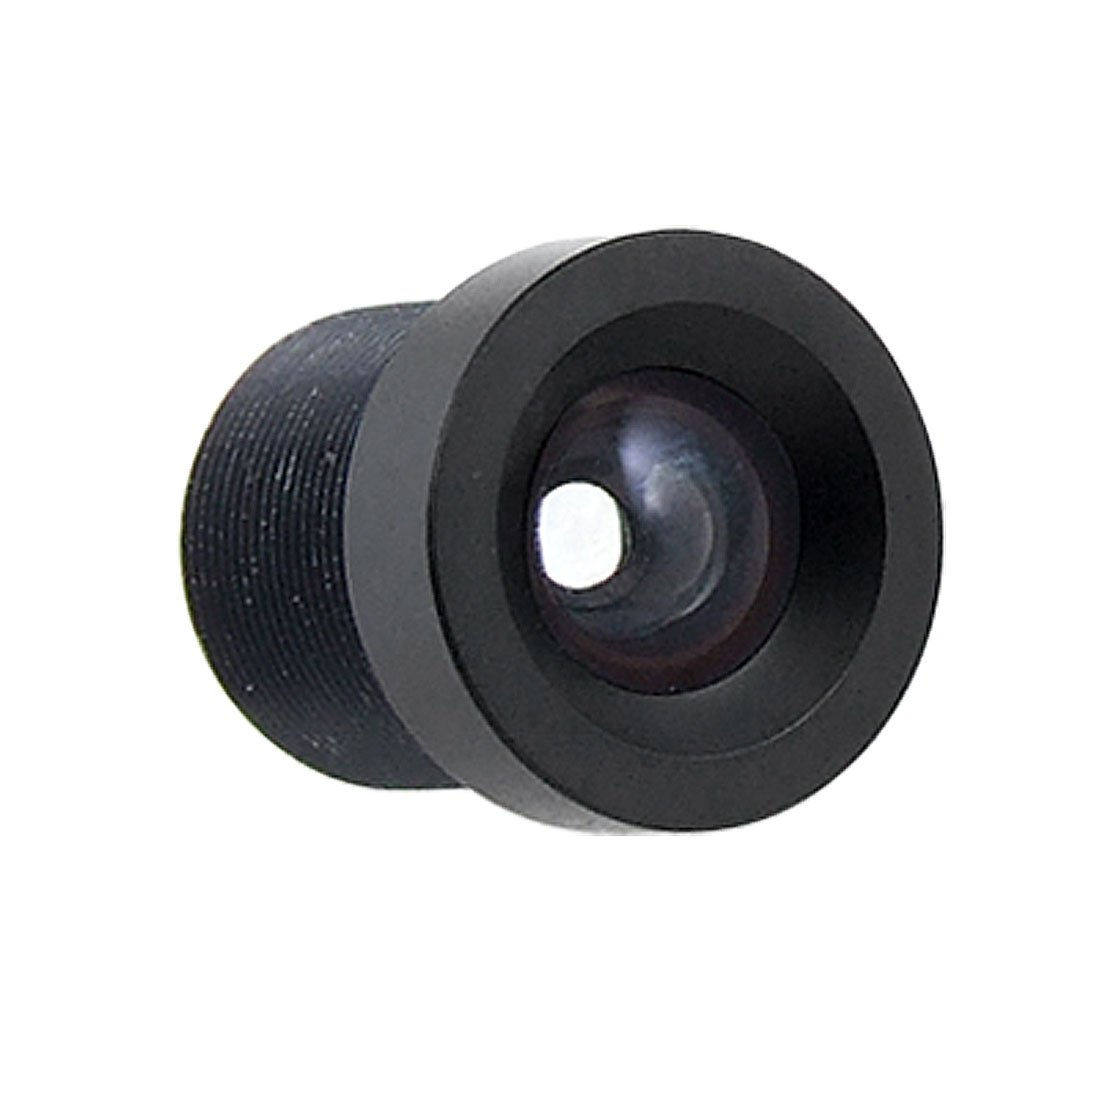 uxcell 3.6mm 92 Degree Wide Angle CCTV Camera IR Board Lens Focal for 1/3' CCD a10101100ux0059